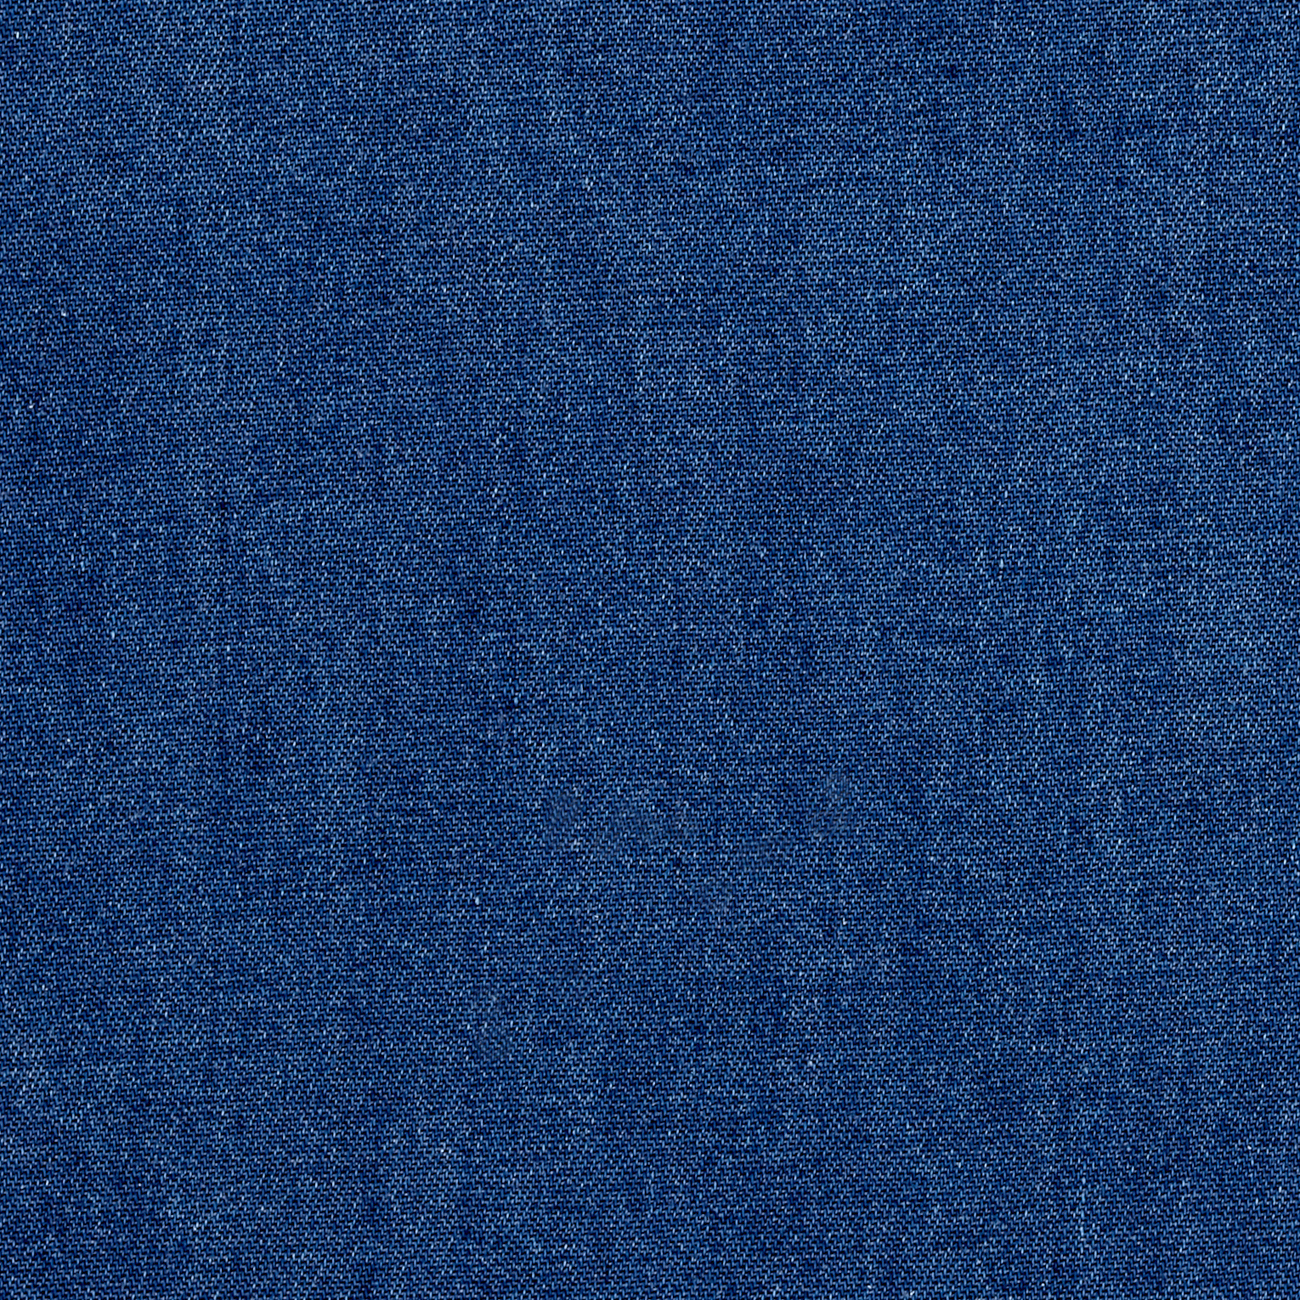 4.5oz Tencel Denim Chmabray Blue Fabric